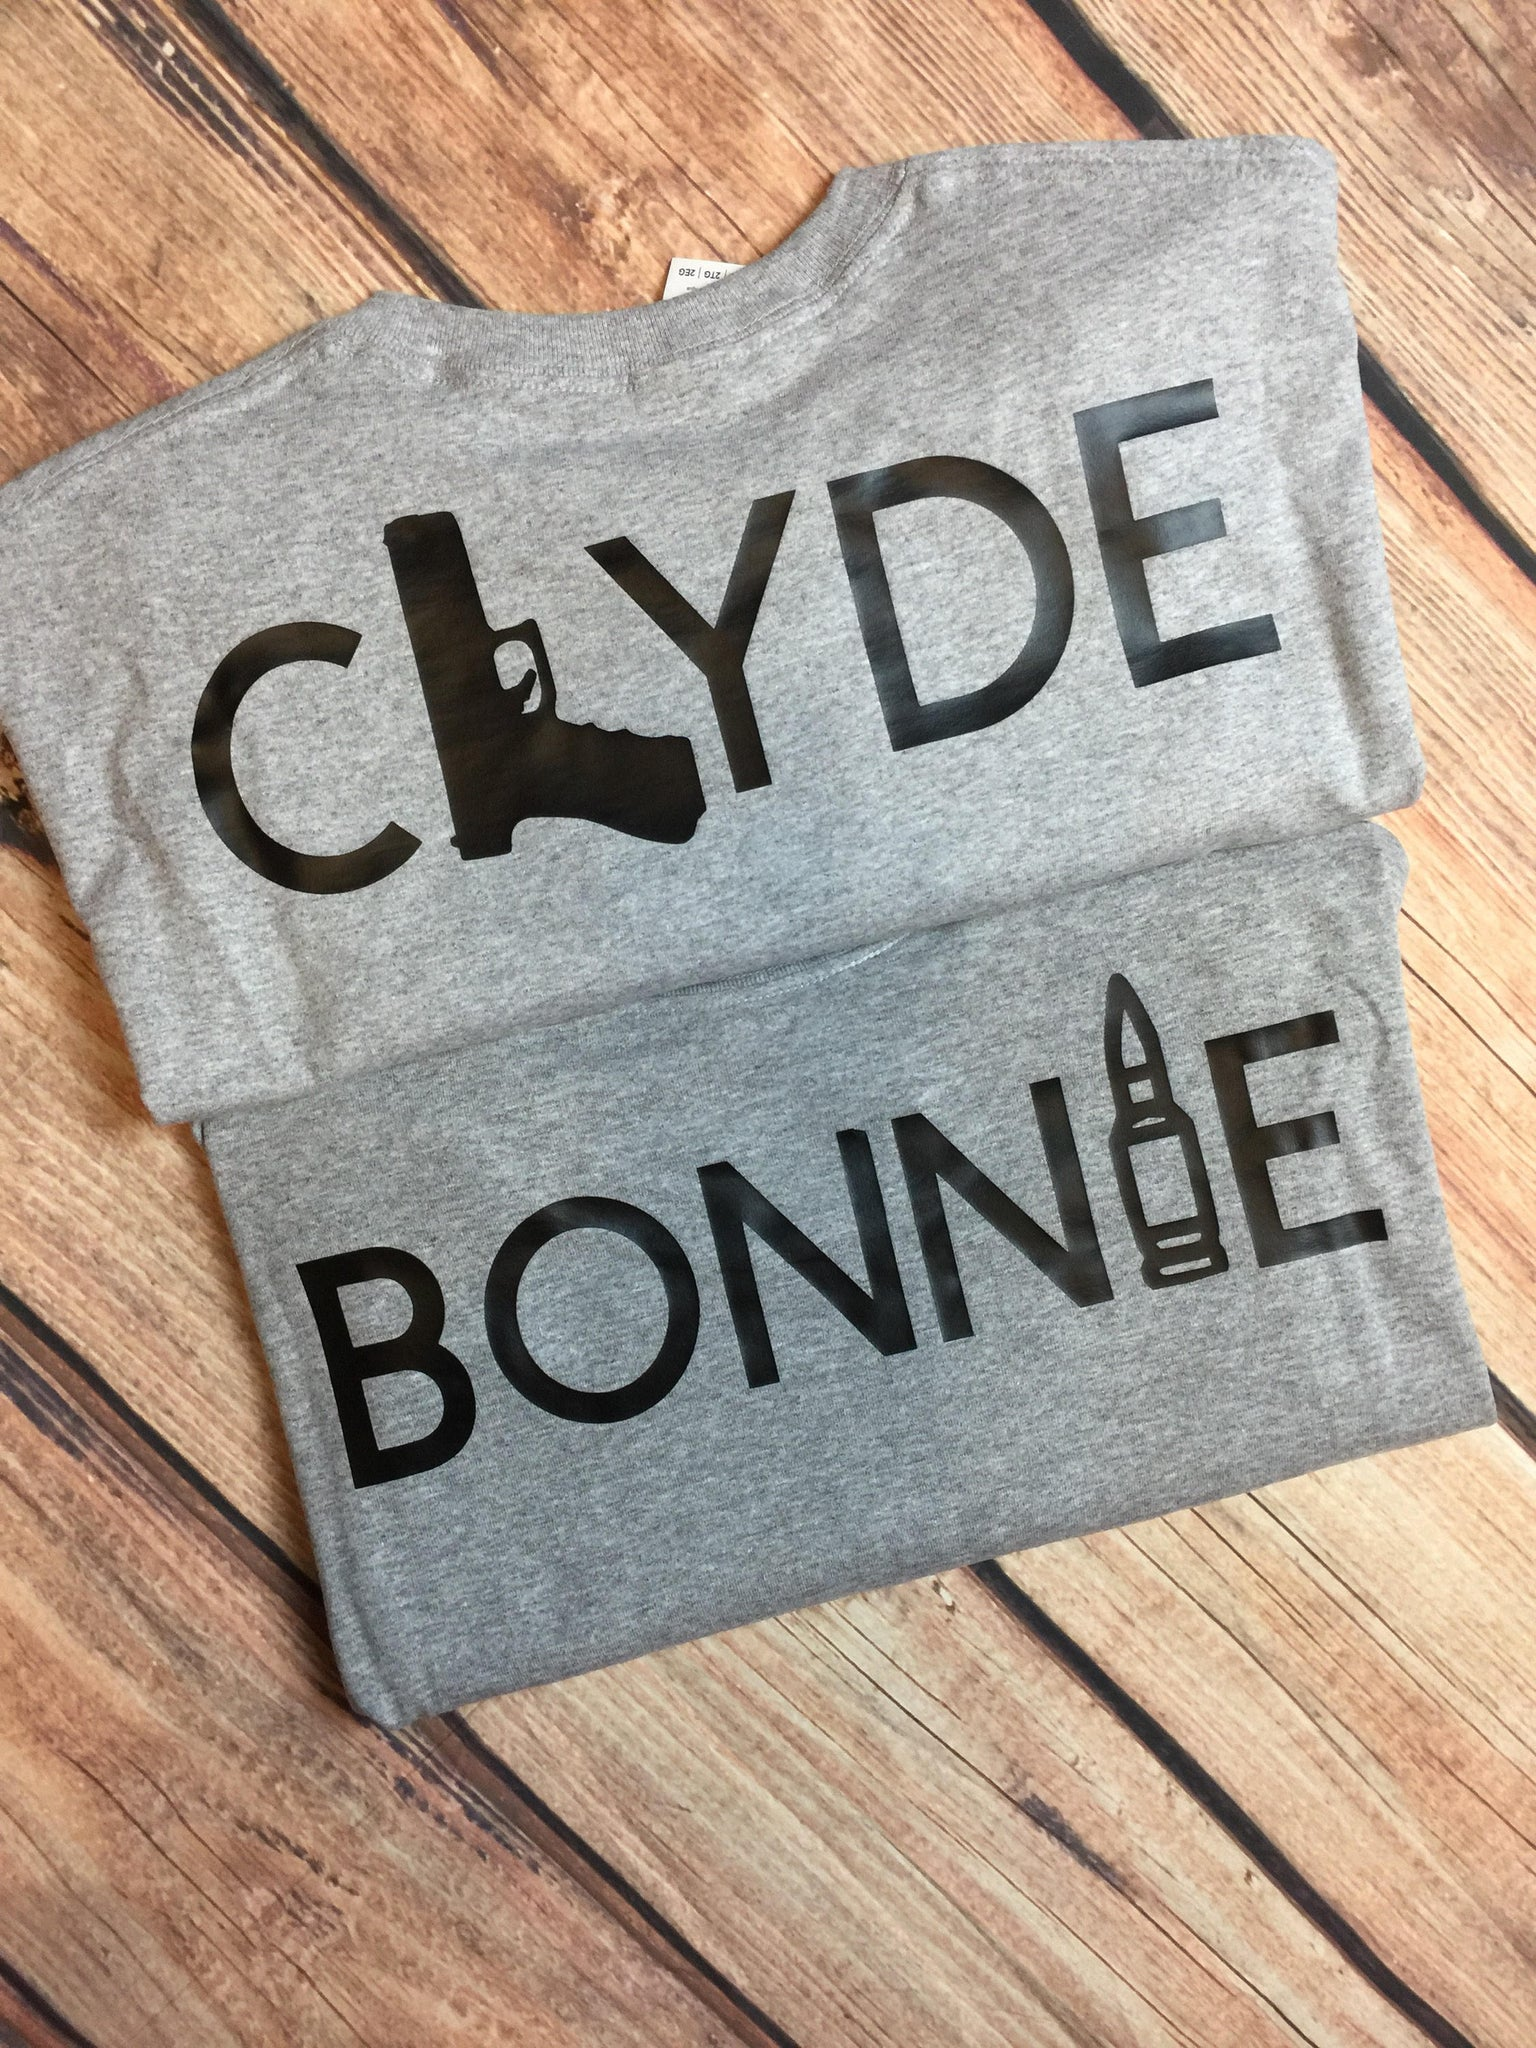 Bonnie & Clyde Couples Shirts Matching Couples Shirts Ride Or Dies